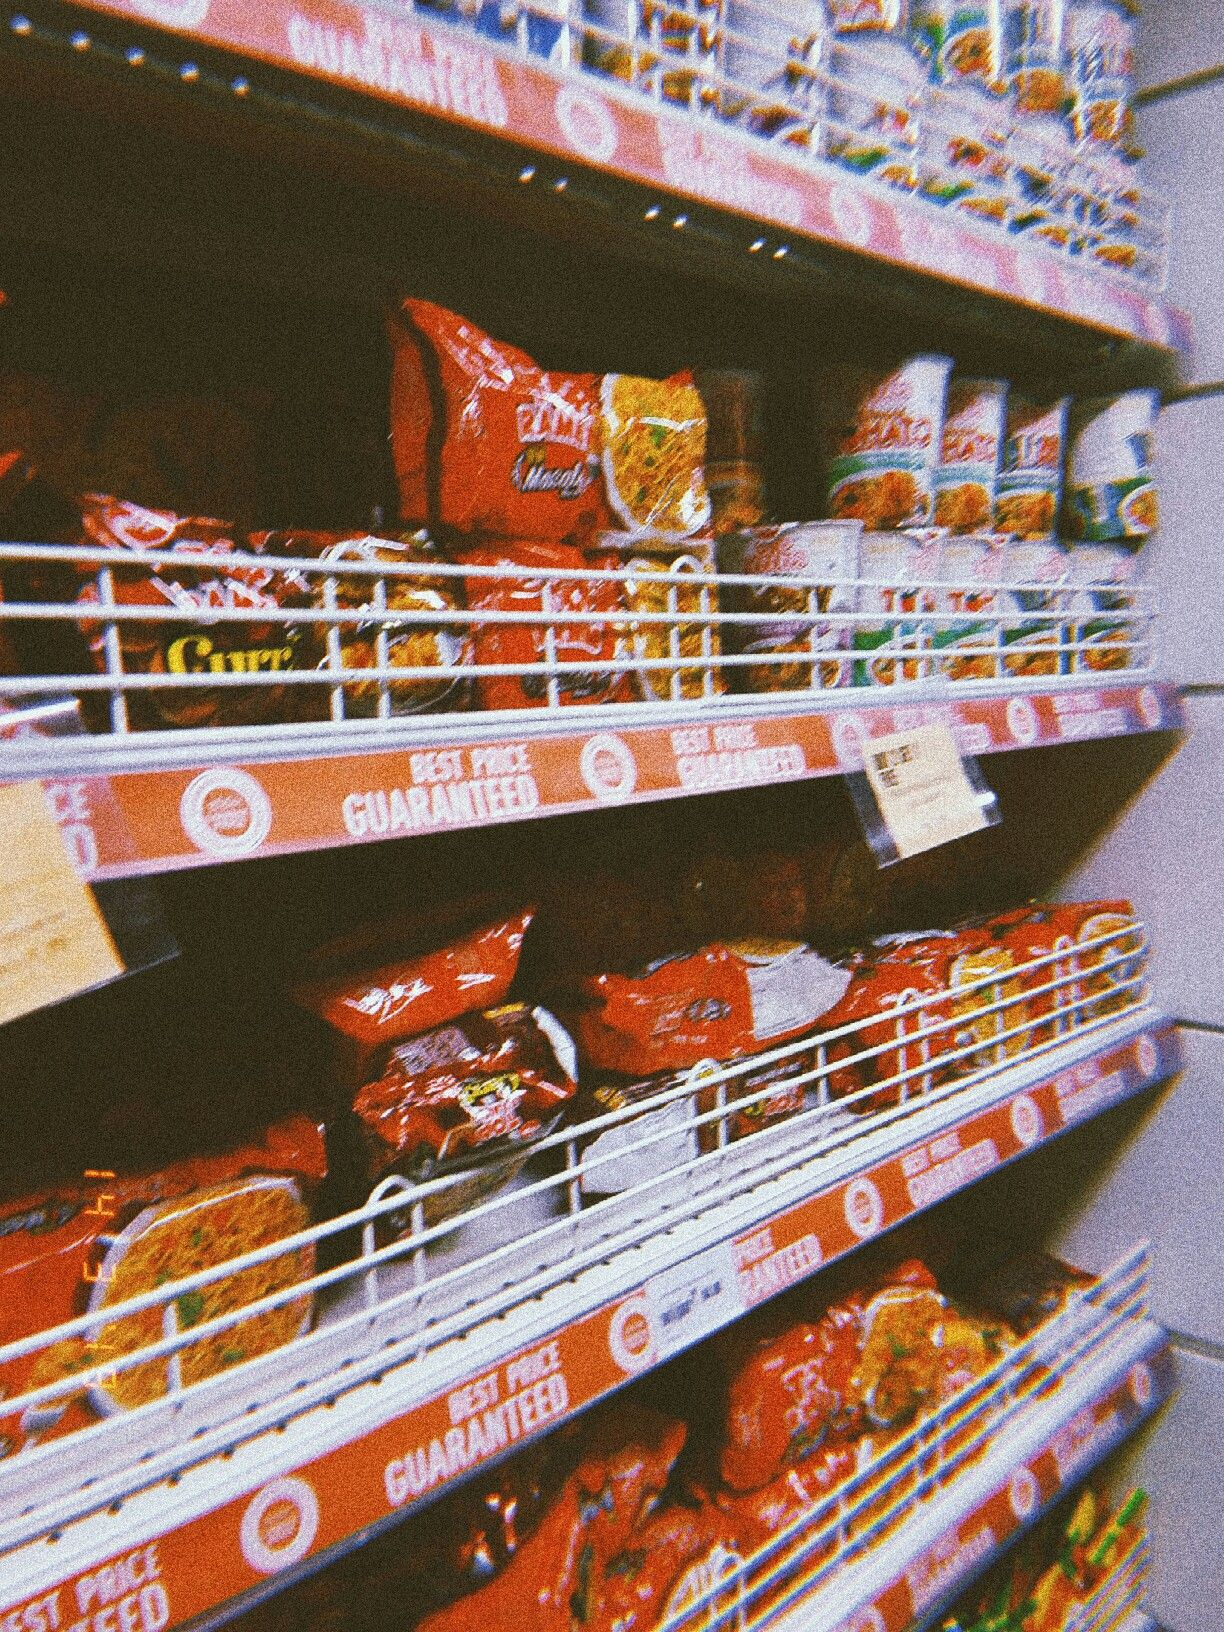 Ramen Section Might Be My Favourite Section Ramen Noodles Grocery Store Aesthetics Vsco Edit T Aesthetic Food Food Goals Pretty Food